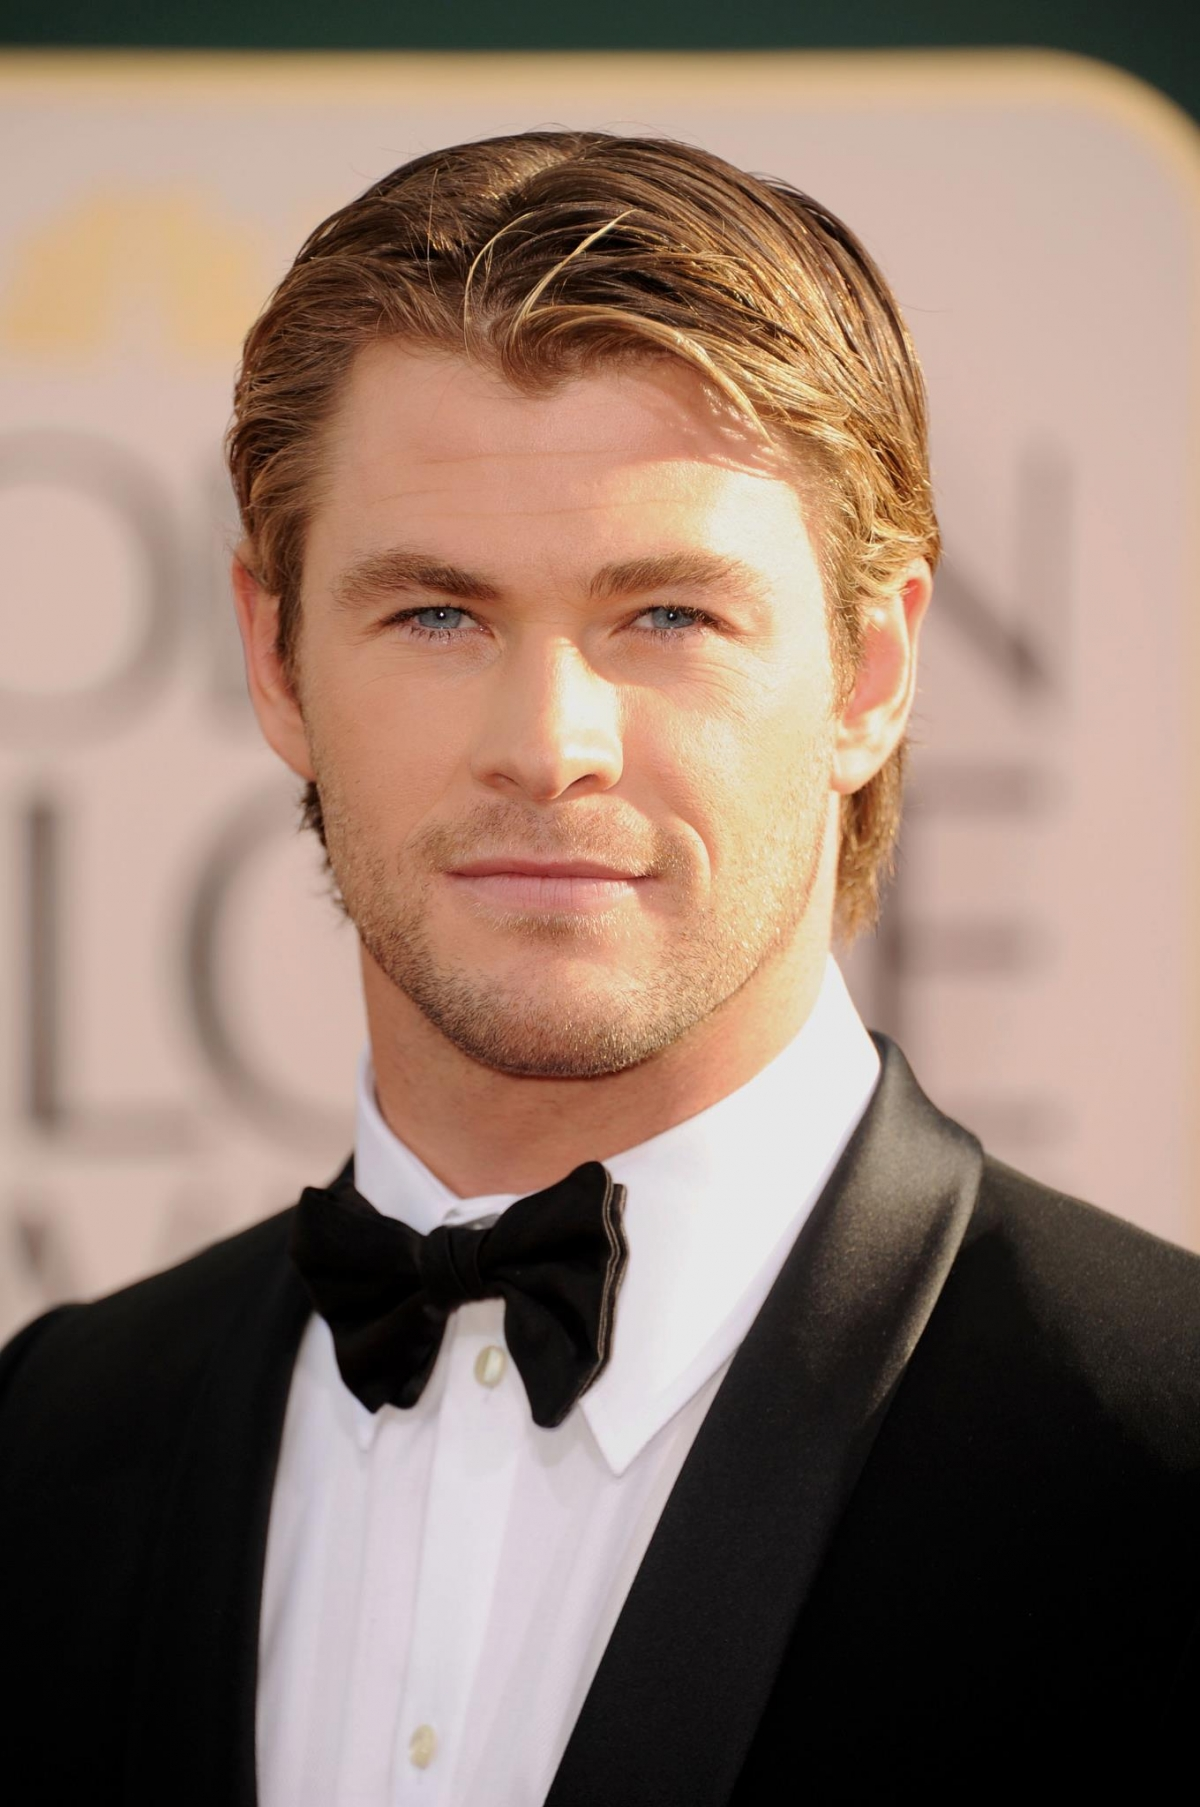 Chris Hemsworth To Host Snl Episode 15 Last Call Ms